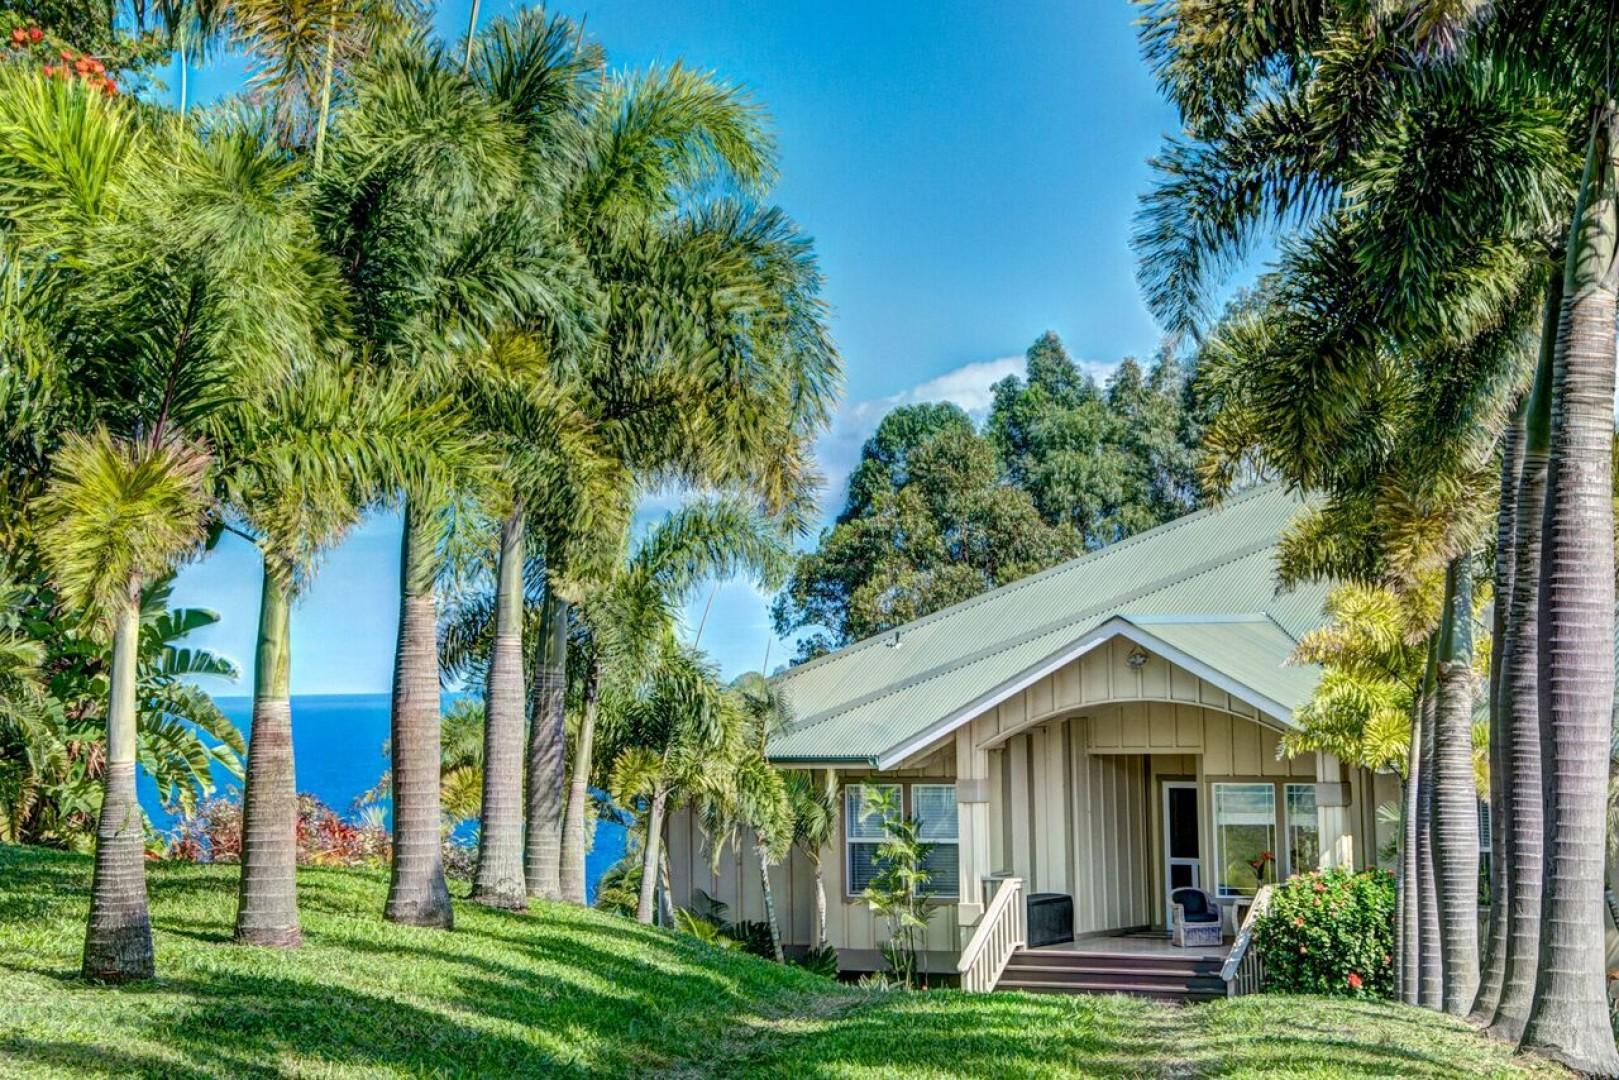 Hale Luana a grand home on 2.5 acres with ocean views....with room for 8 guests this is a great place to gather.